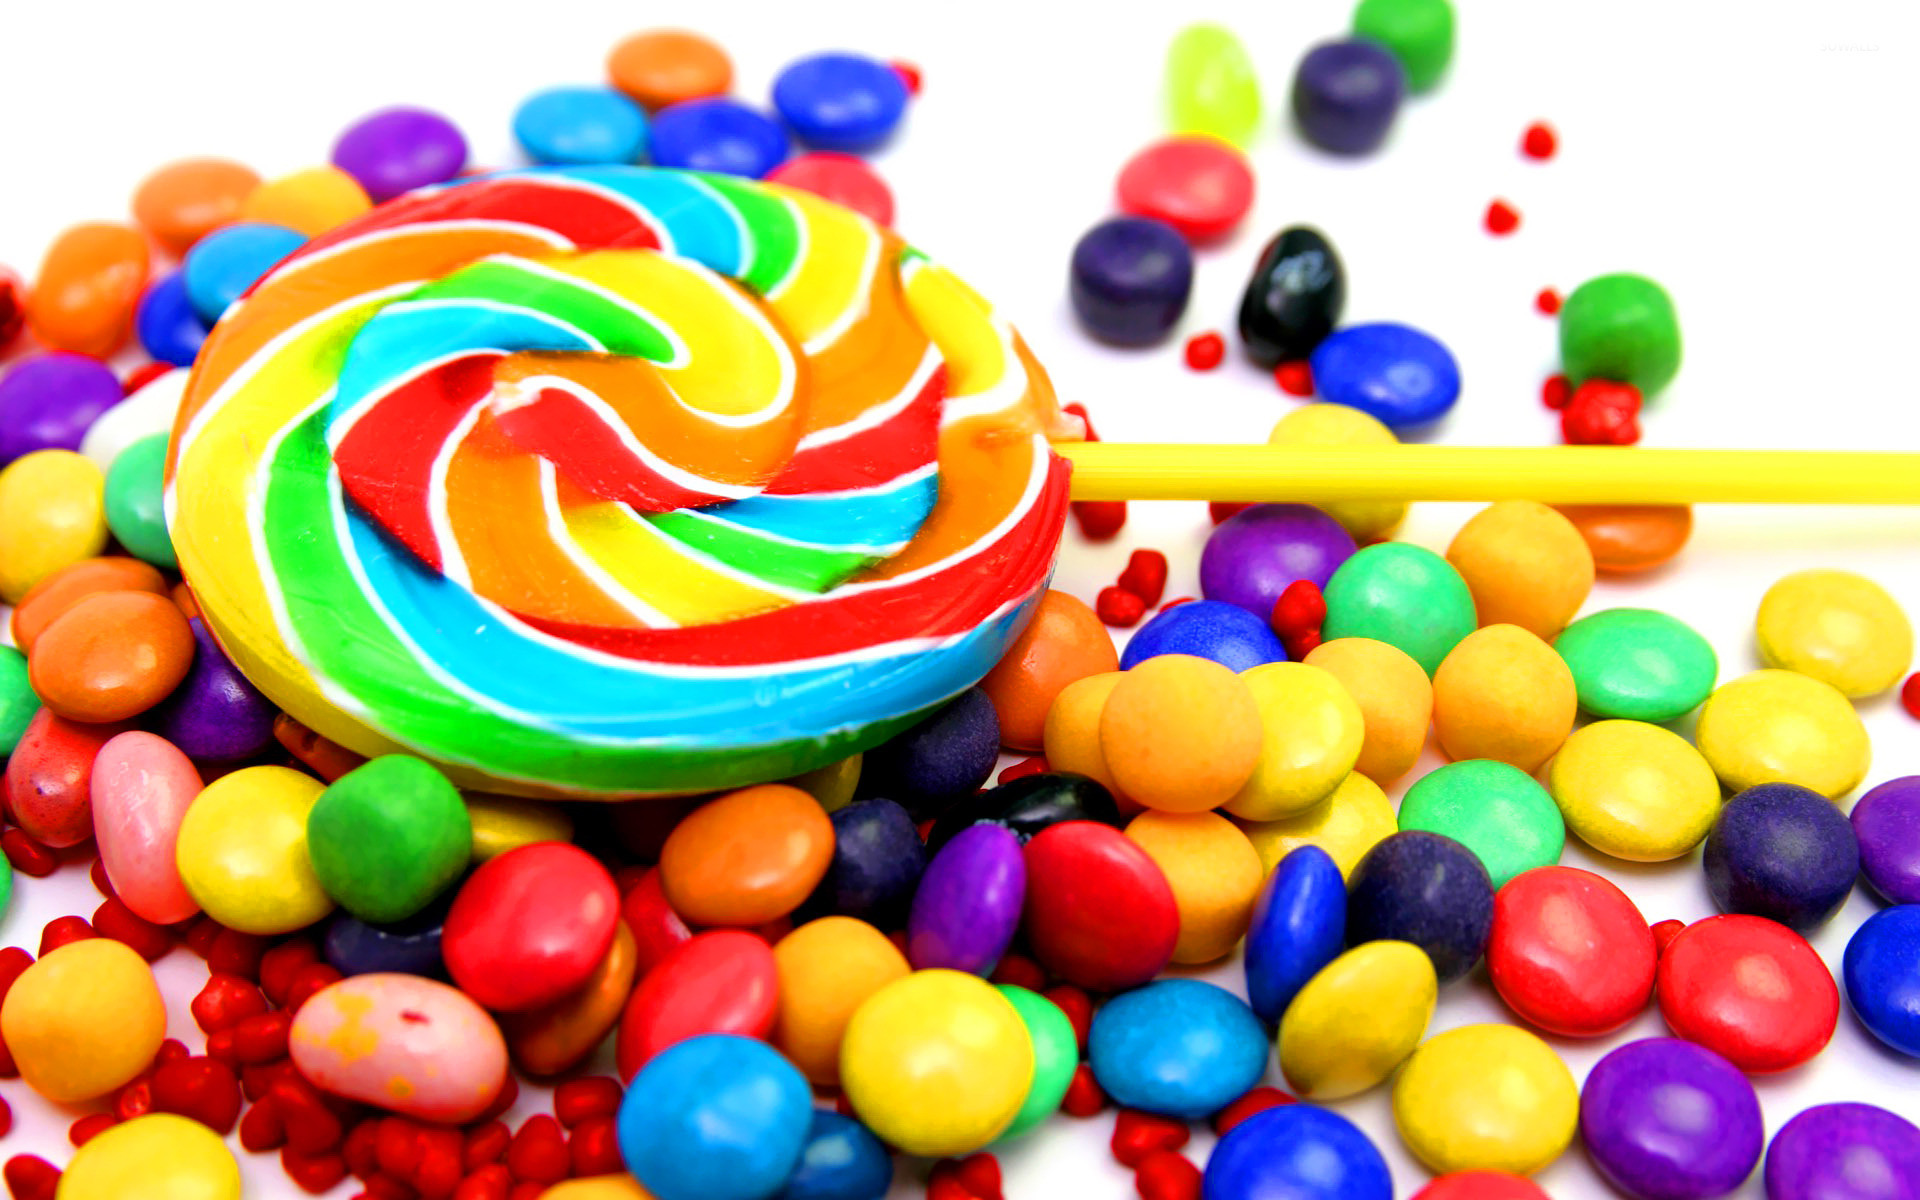 Colorful candy wallpaper jpg